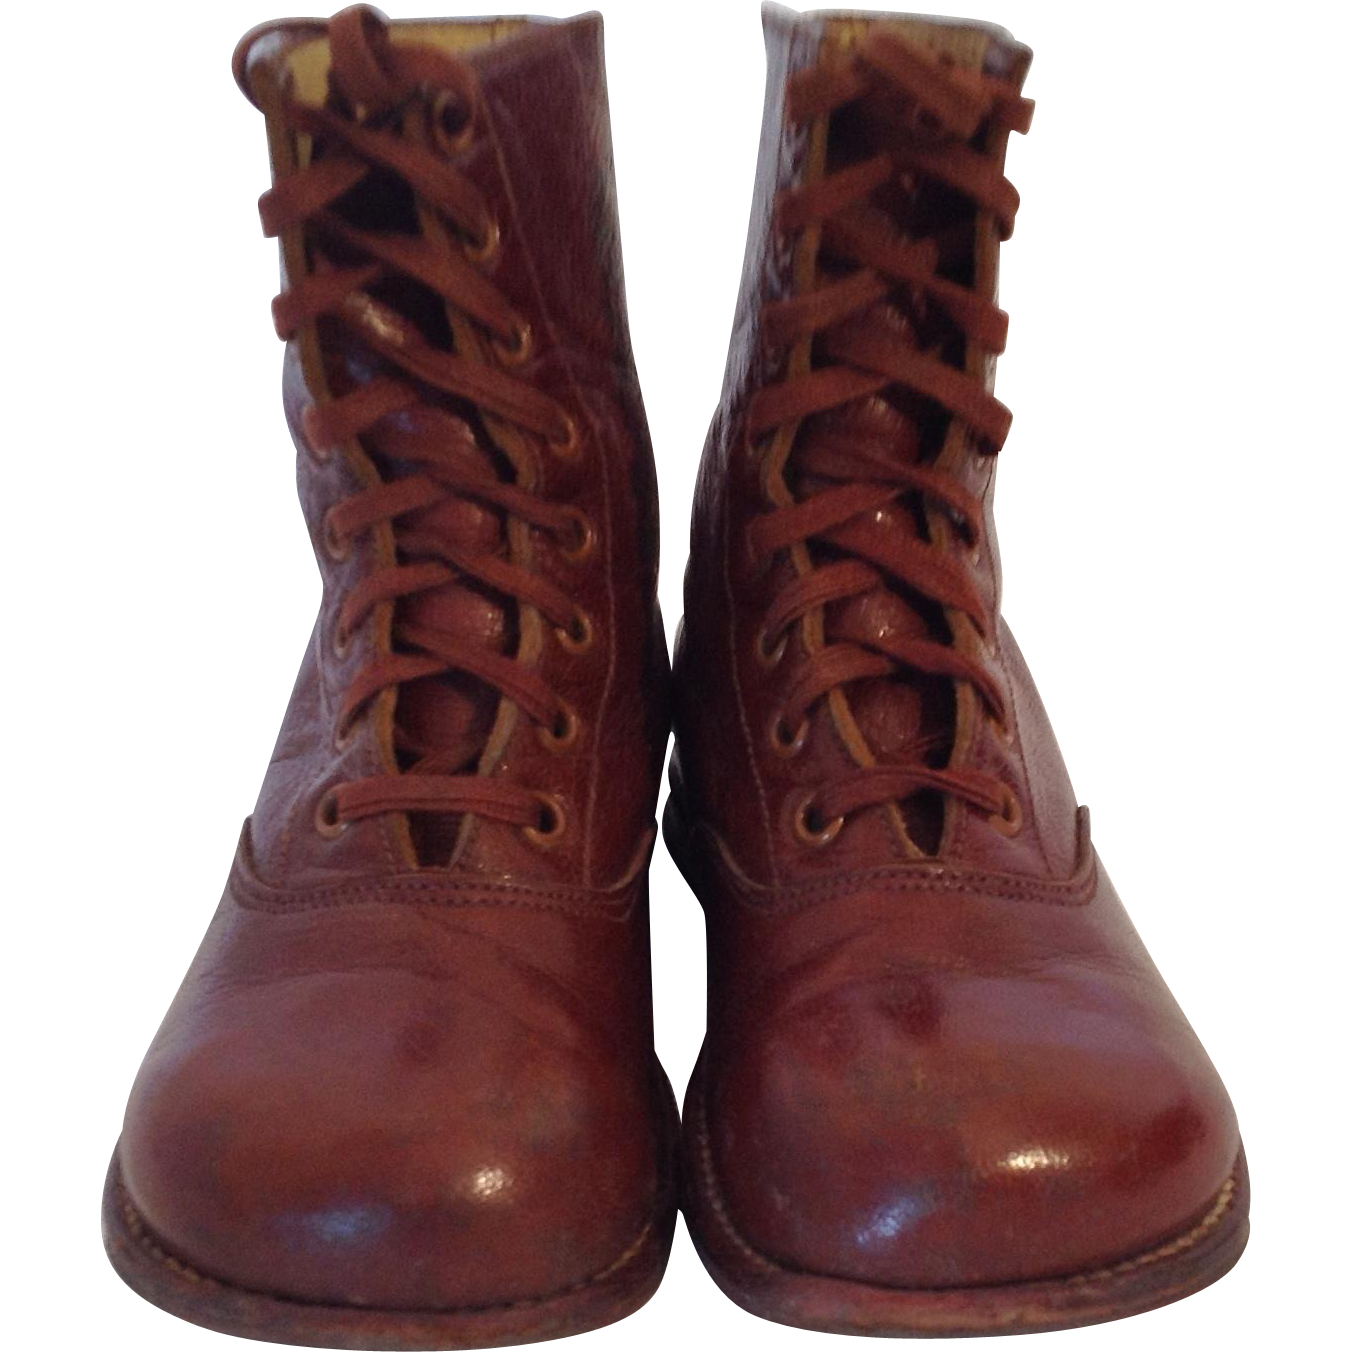 Transparent boot clear. French vintage brown leather